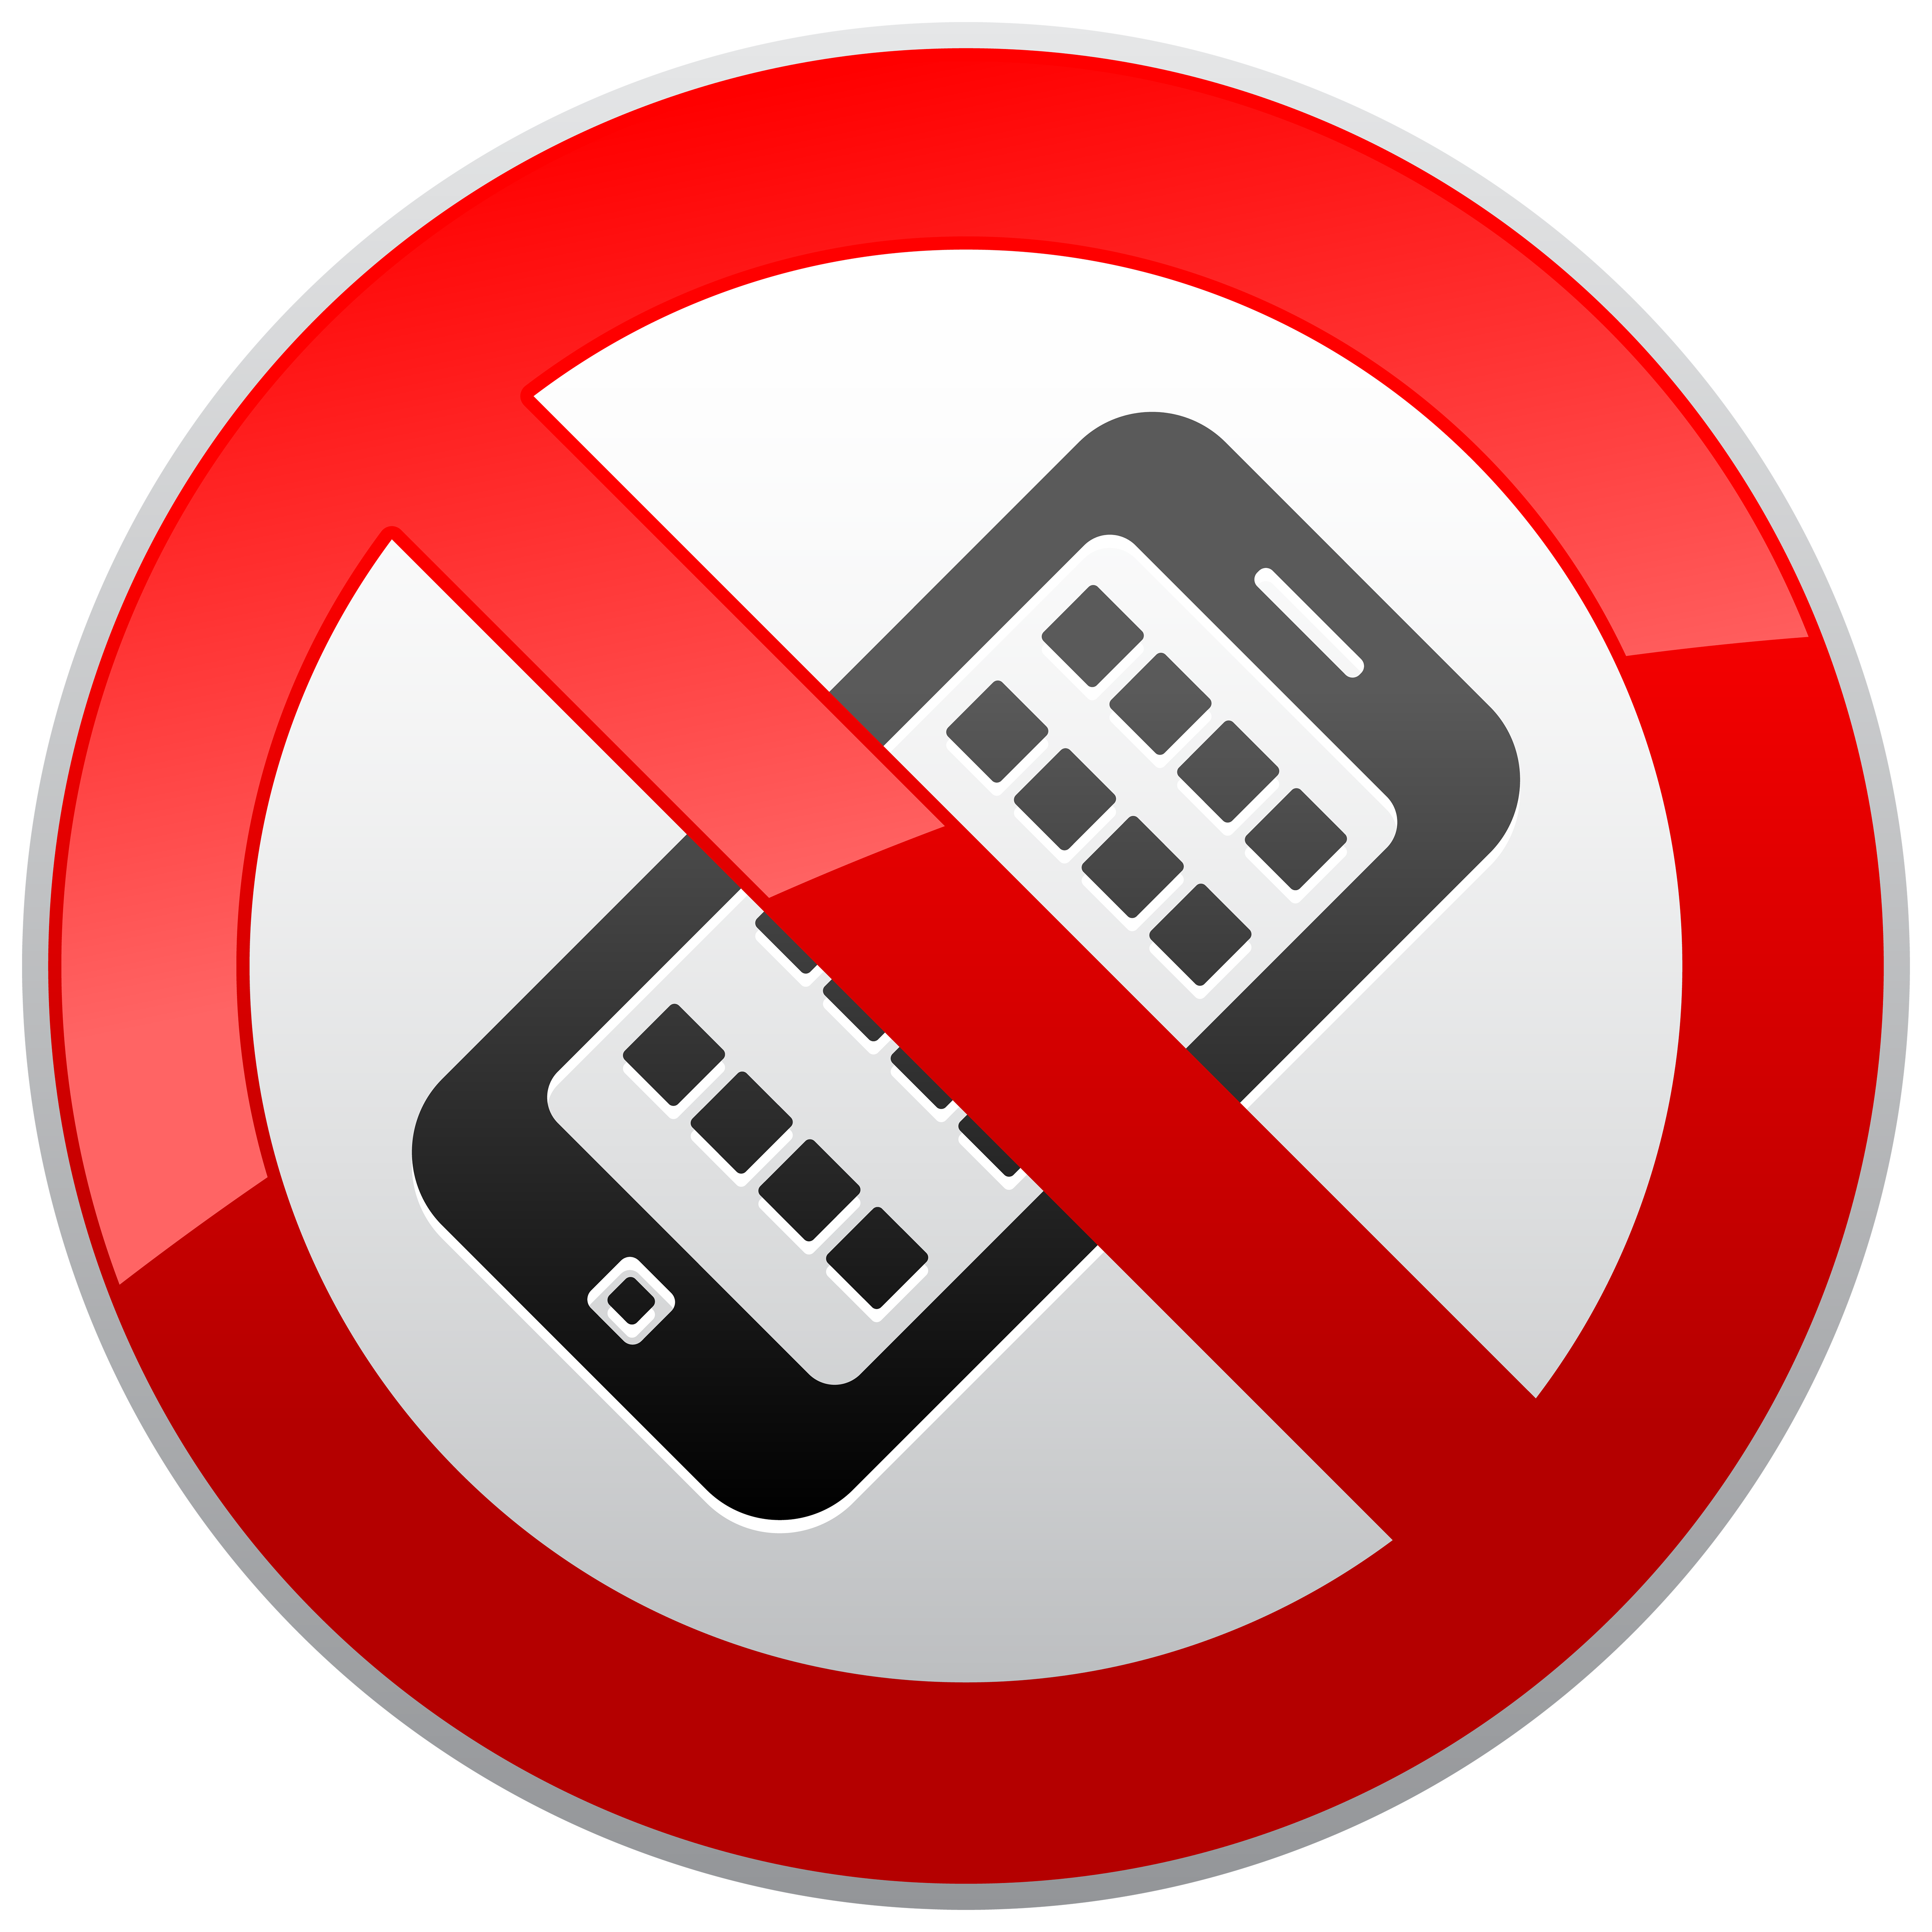 No phone png. Activated mobile phones prohibition